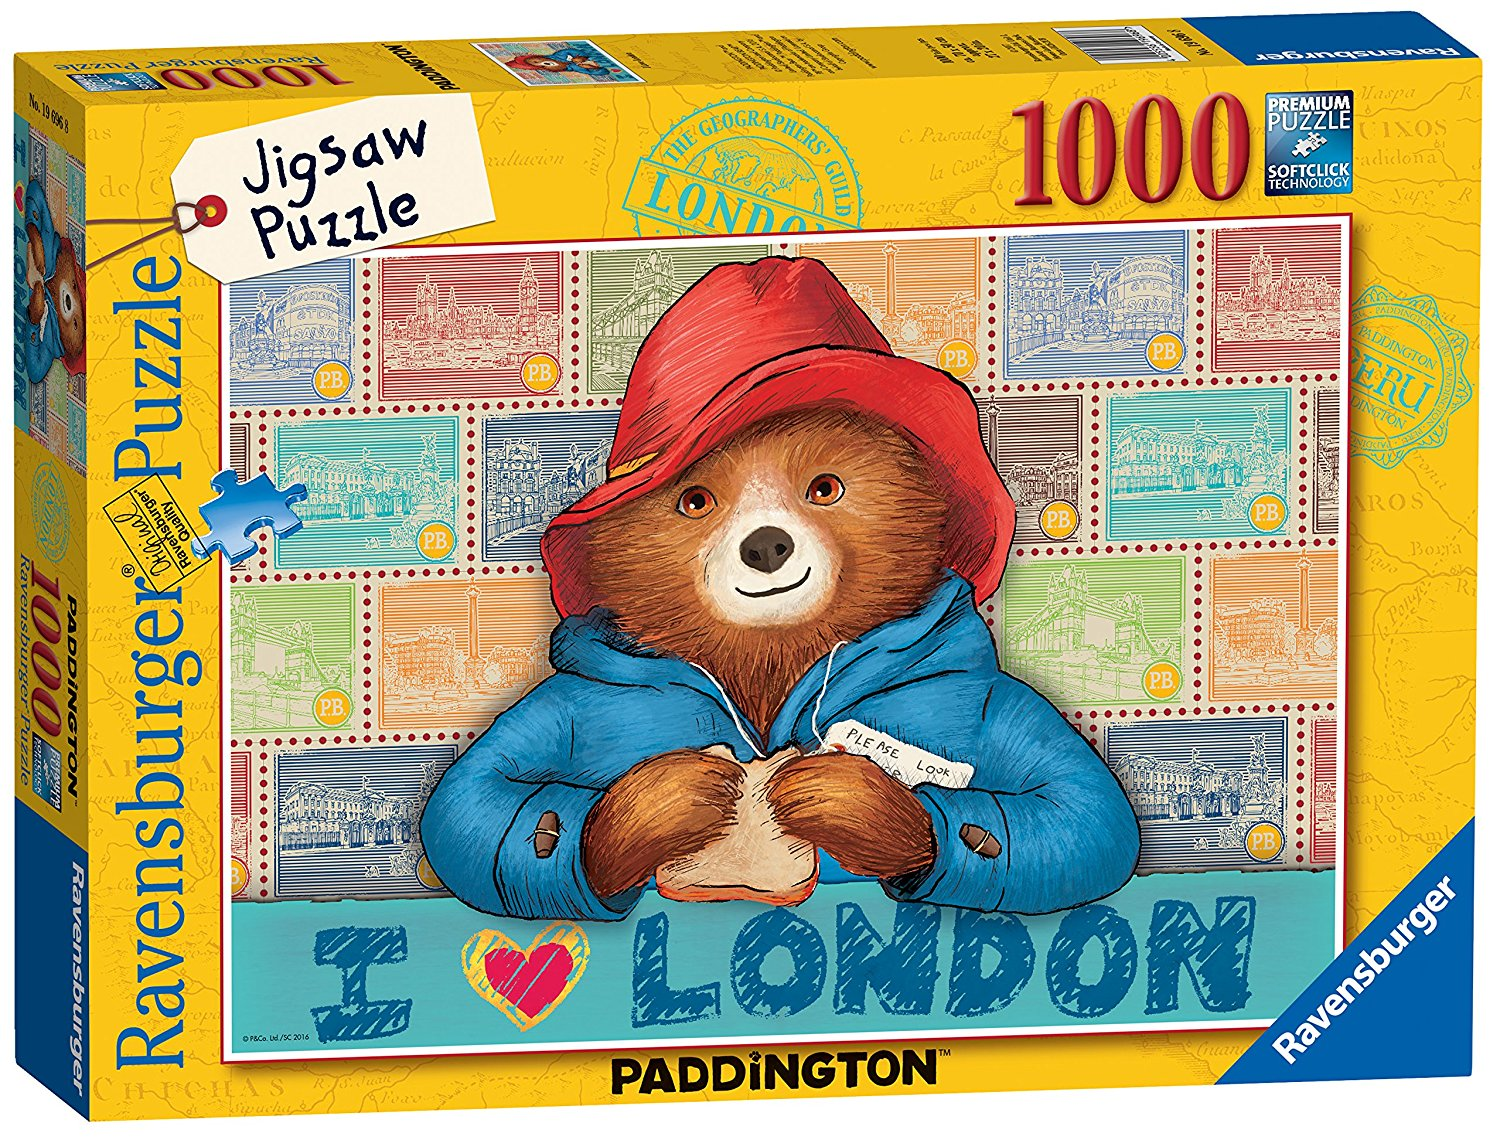 Paddington Bear, 1000pc